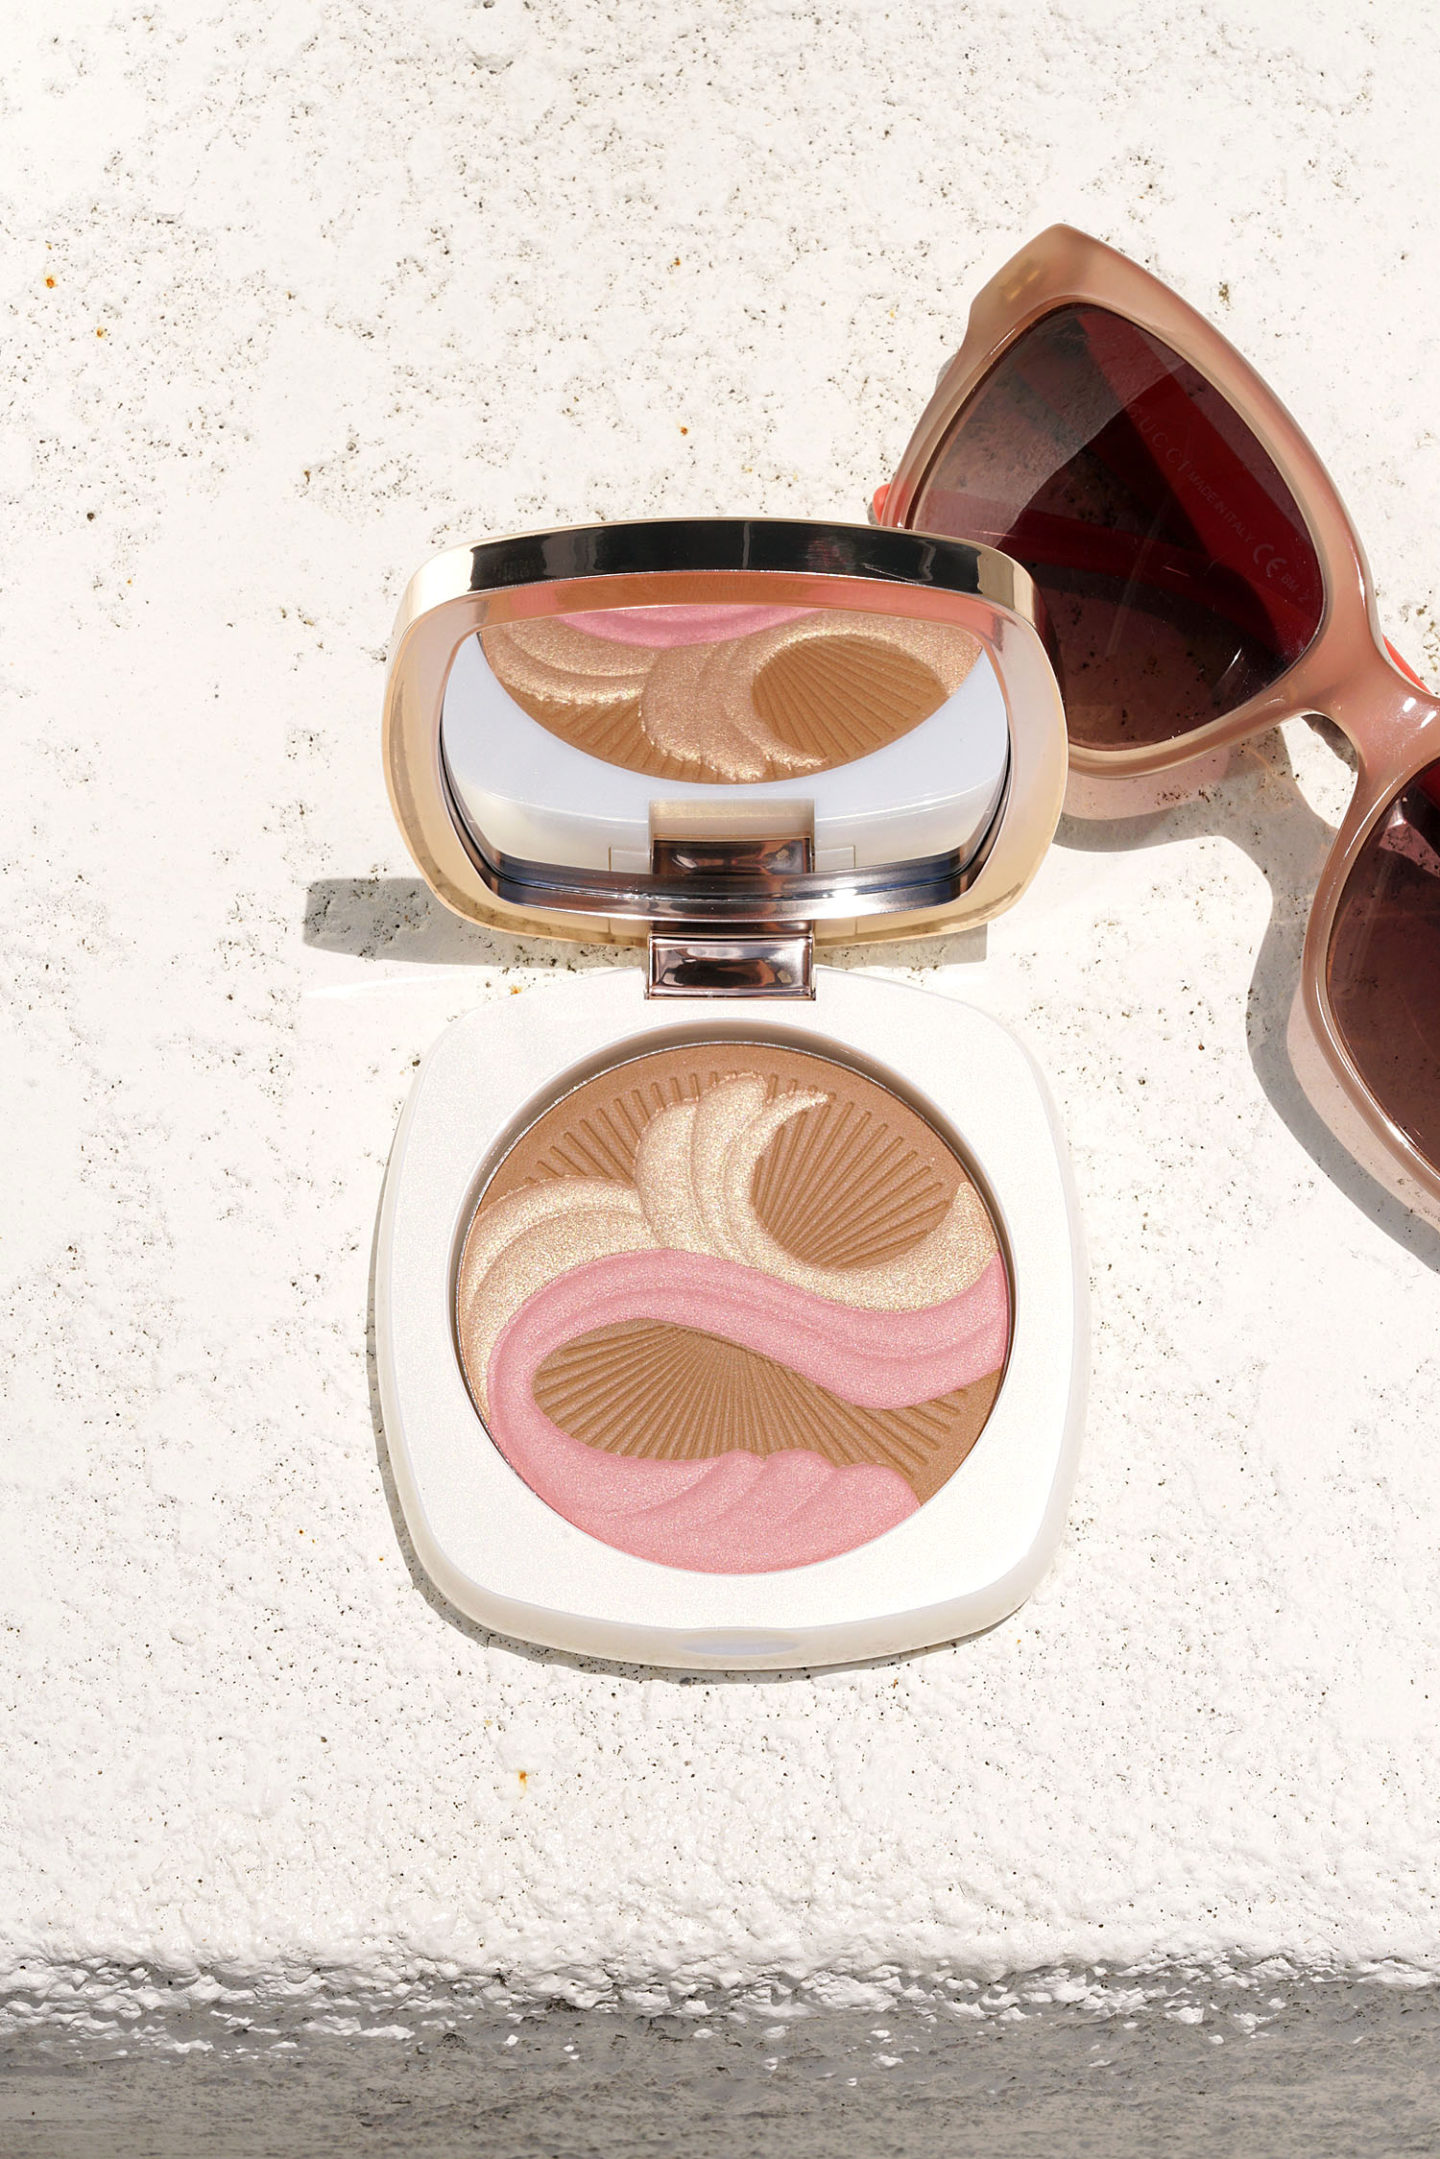 La Mer Bronzing Powder 2018 Revue + Échantillons via The Beauty Look Book